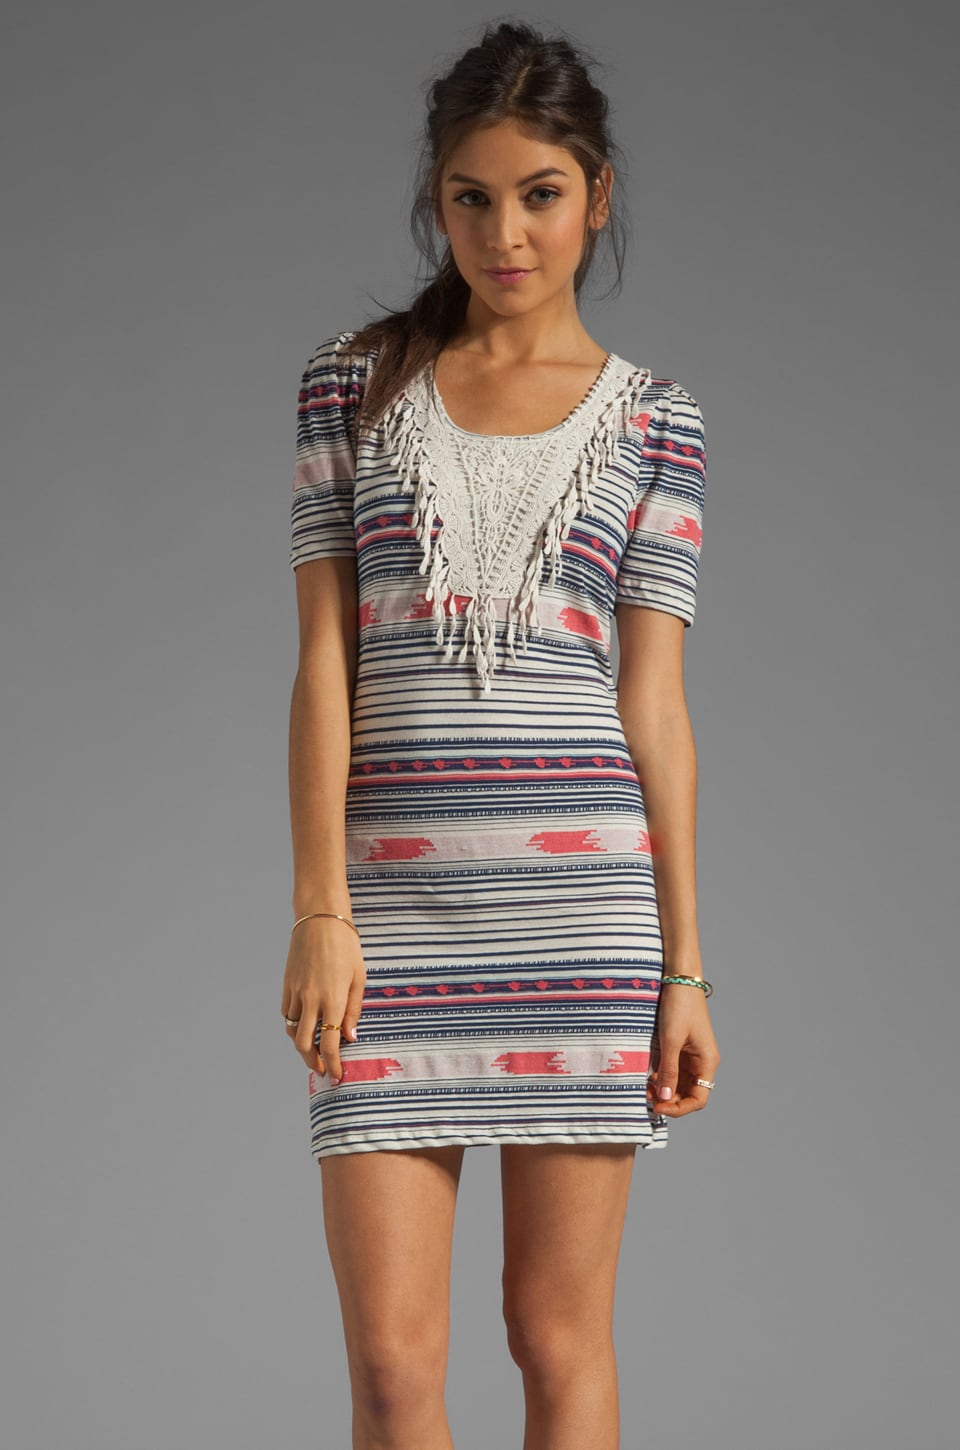 Maison Scotch Fringe Dress in Multi Stripe